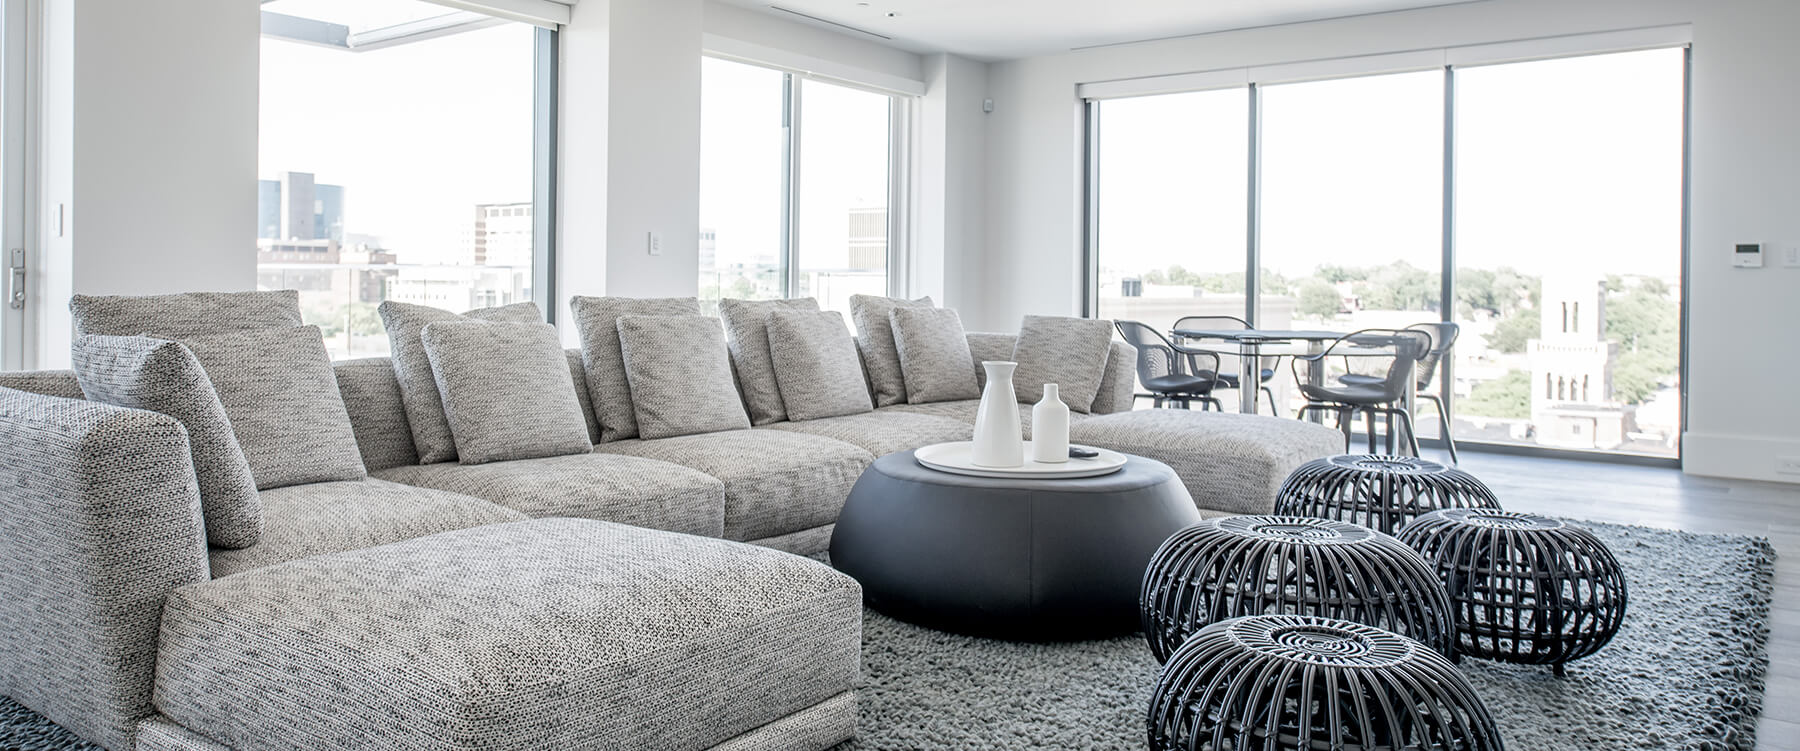 Living room at urban penthouse